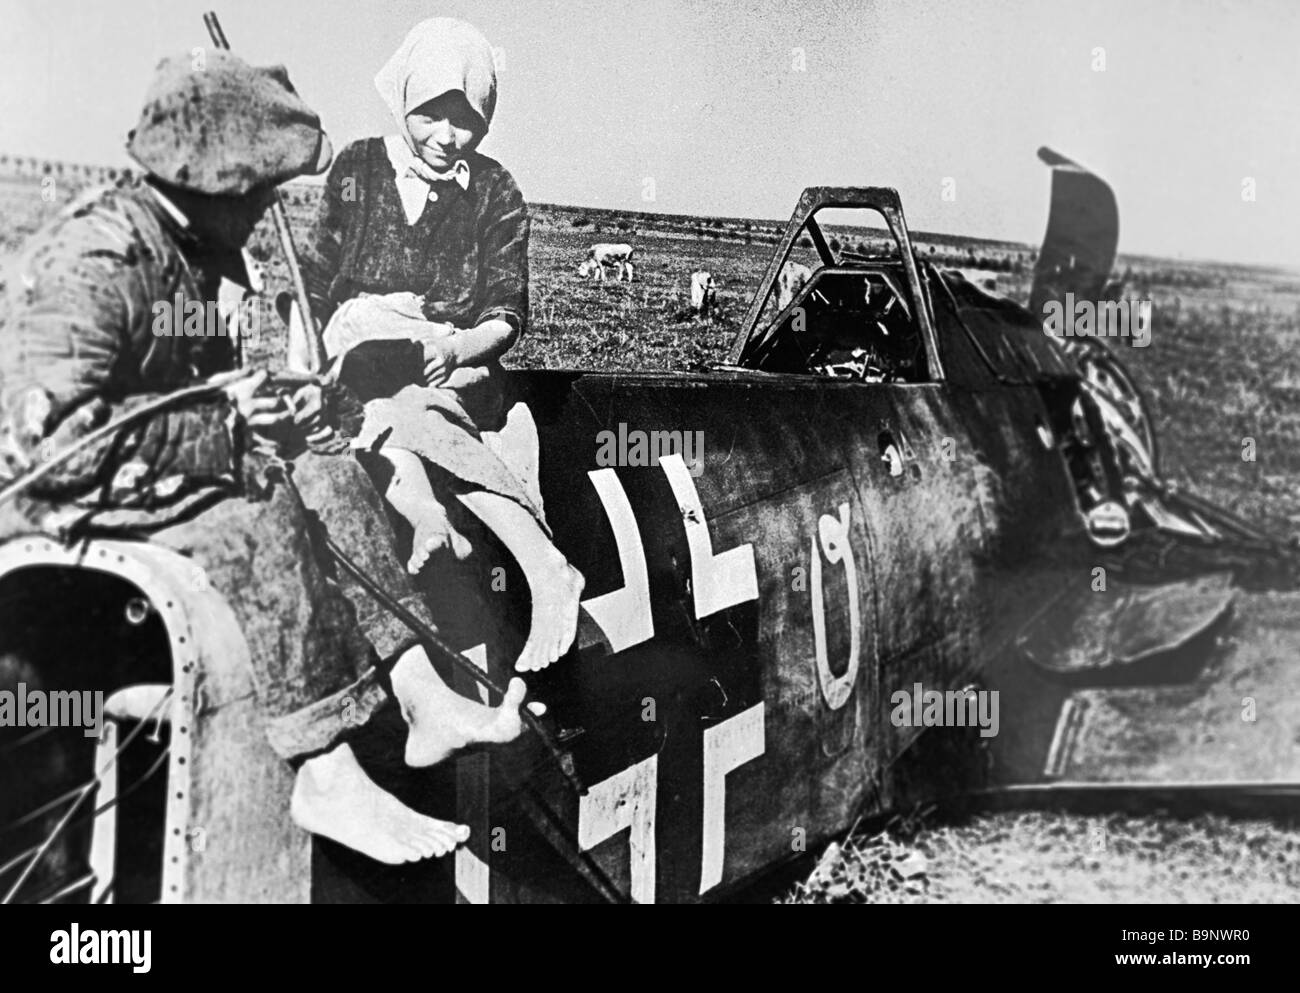 Village children sitting on the fuselage of a downed Nazi plane in the field - Stock Image